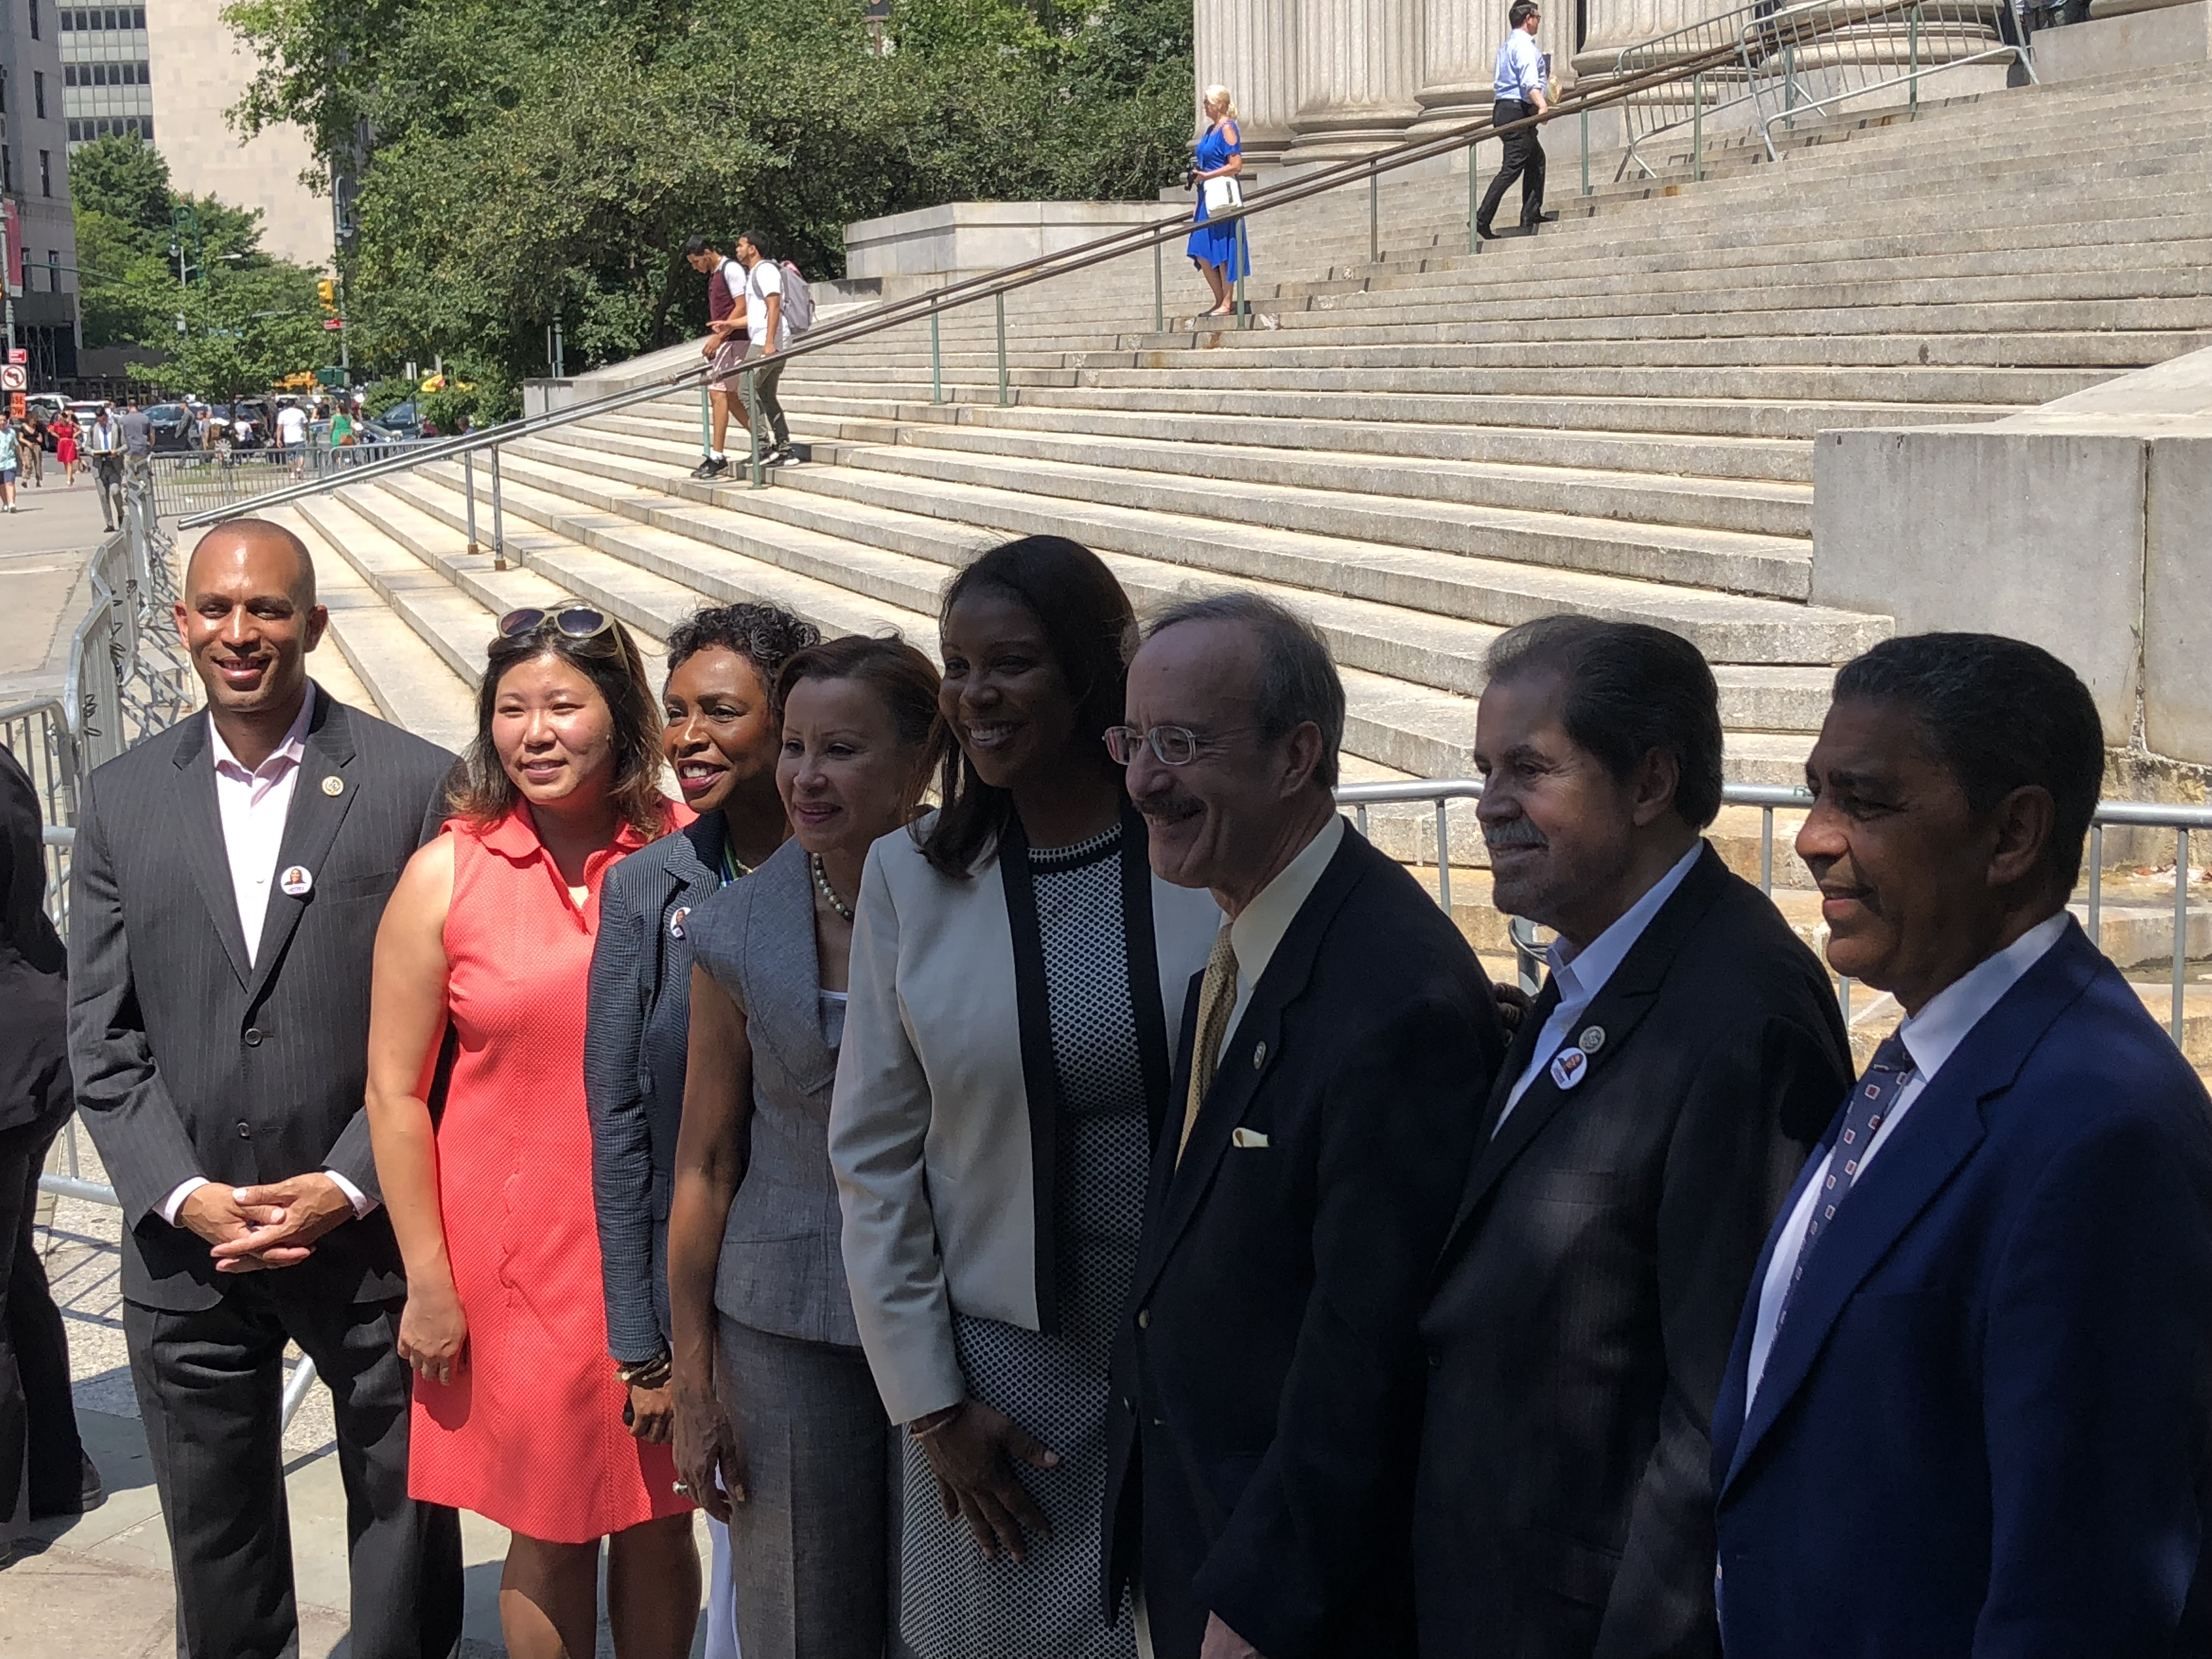 The members of New York City's congressional delegation literally line up in support of Letitia James for attorney general.